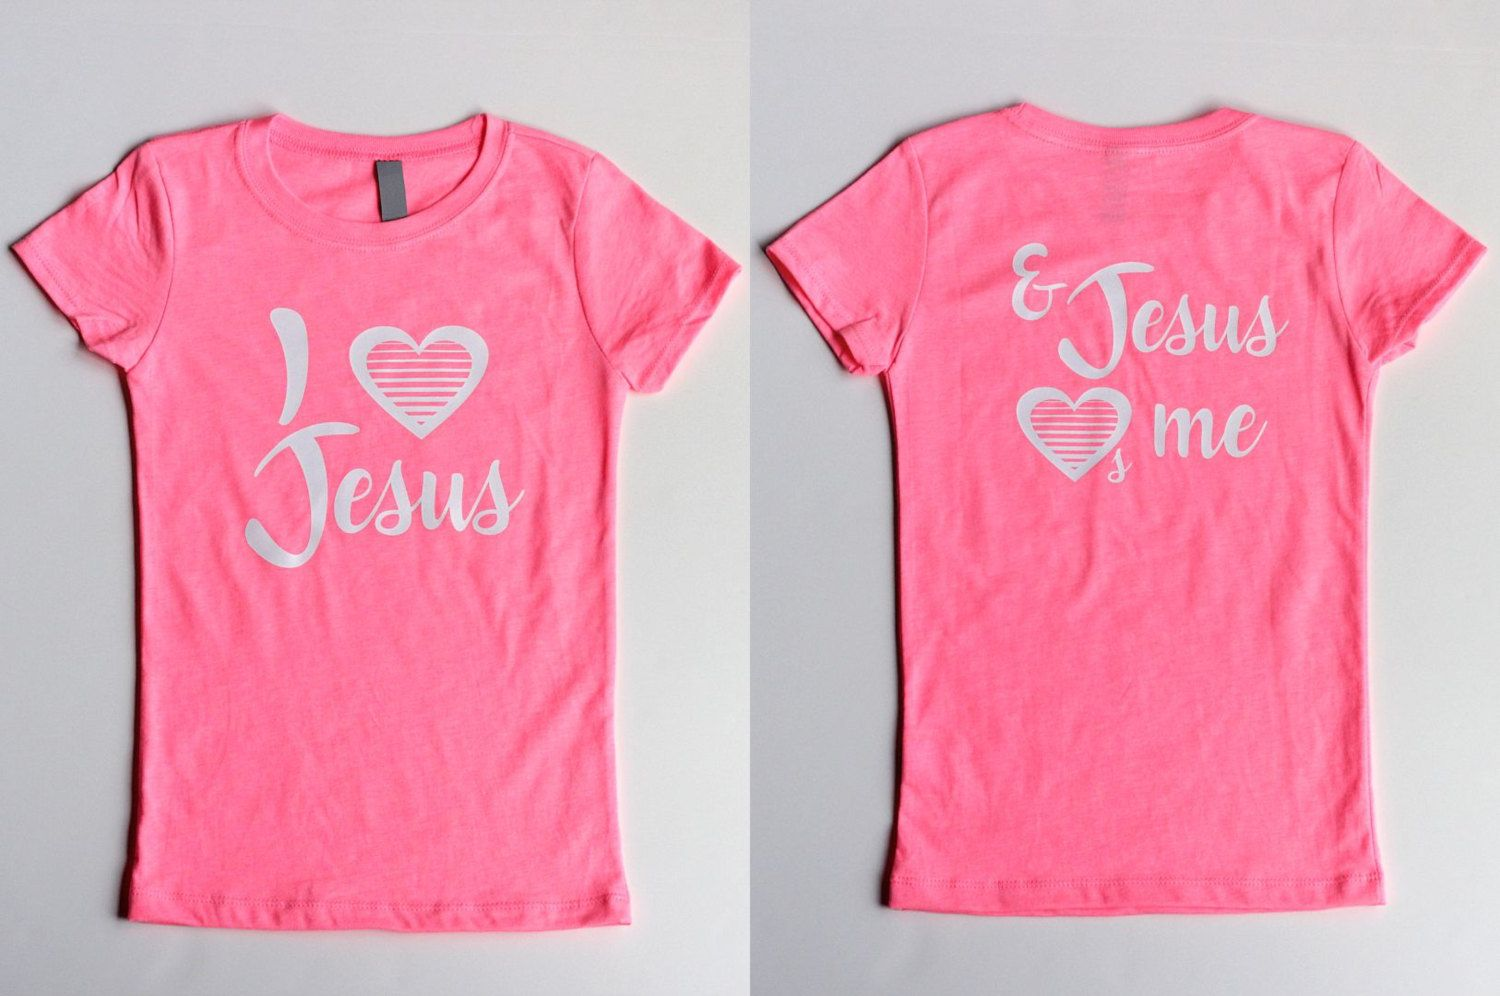 Jesus loves me shirts christian t shirts for girls christian jesus loves me shirts christian t shirts for girls christian shirts birthday gifts for girls easter negle Gallery